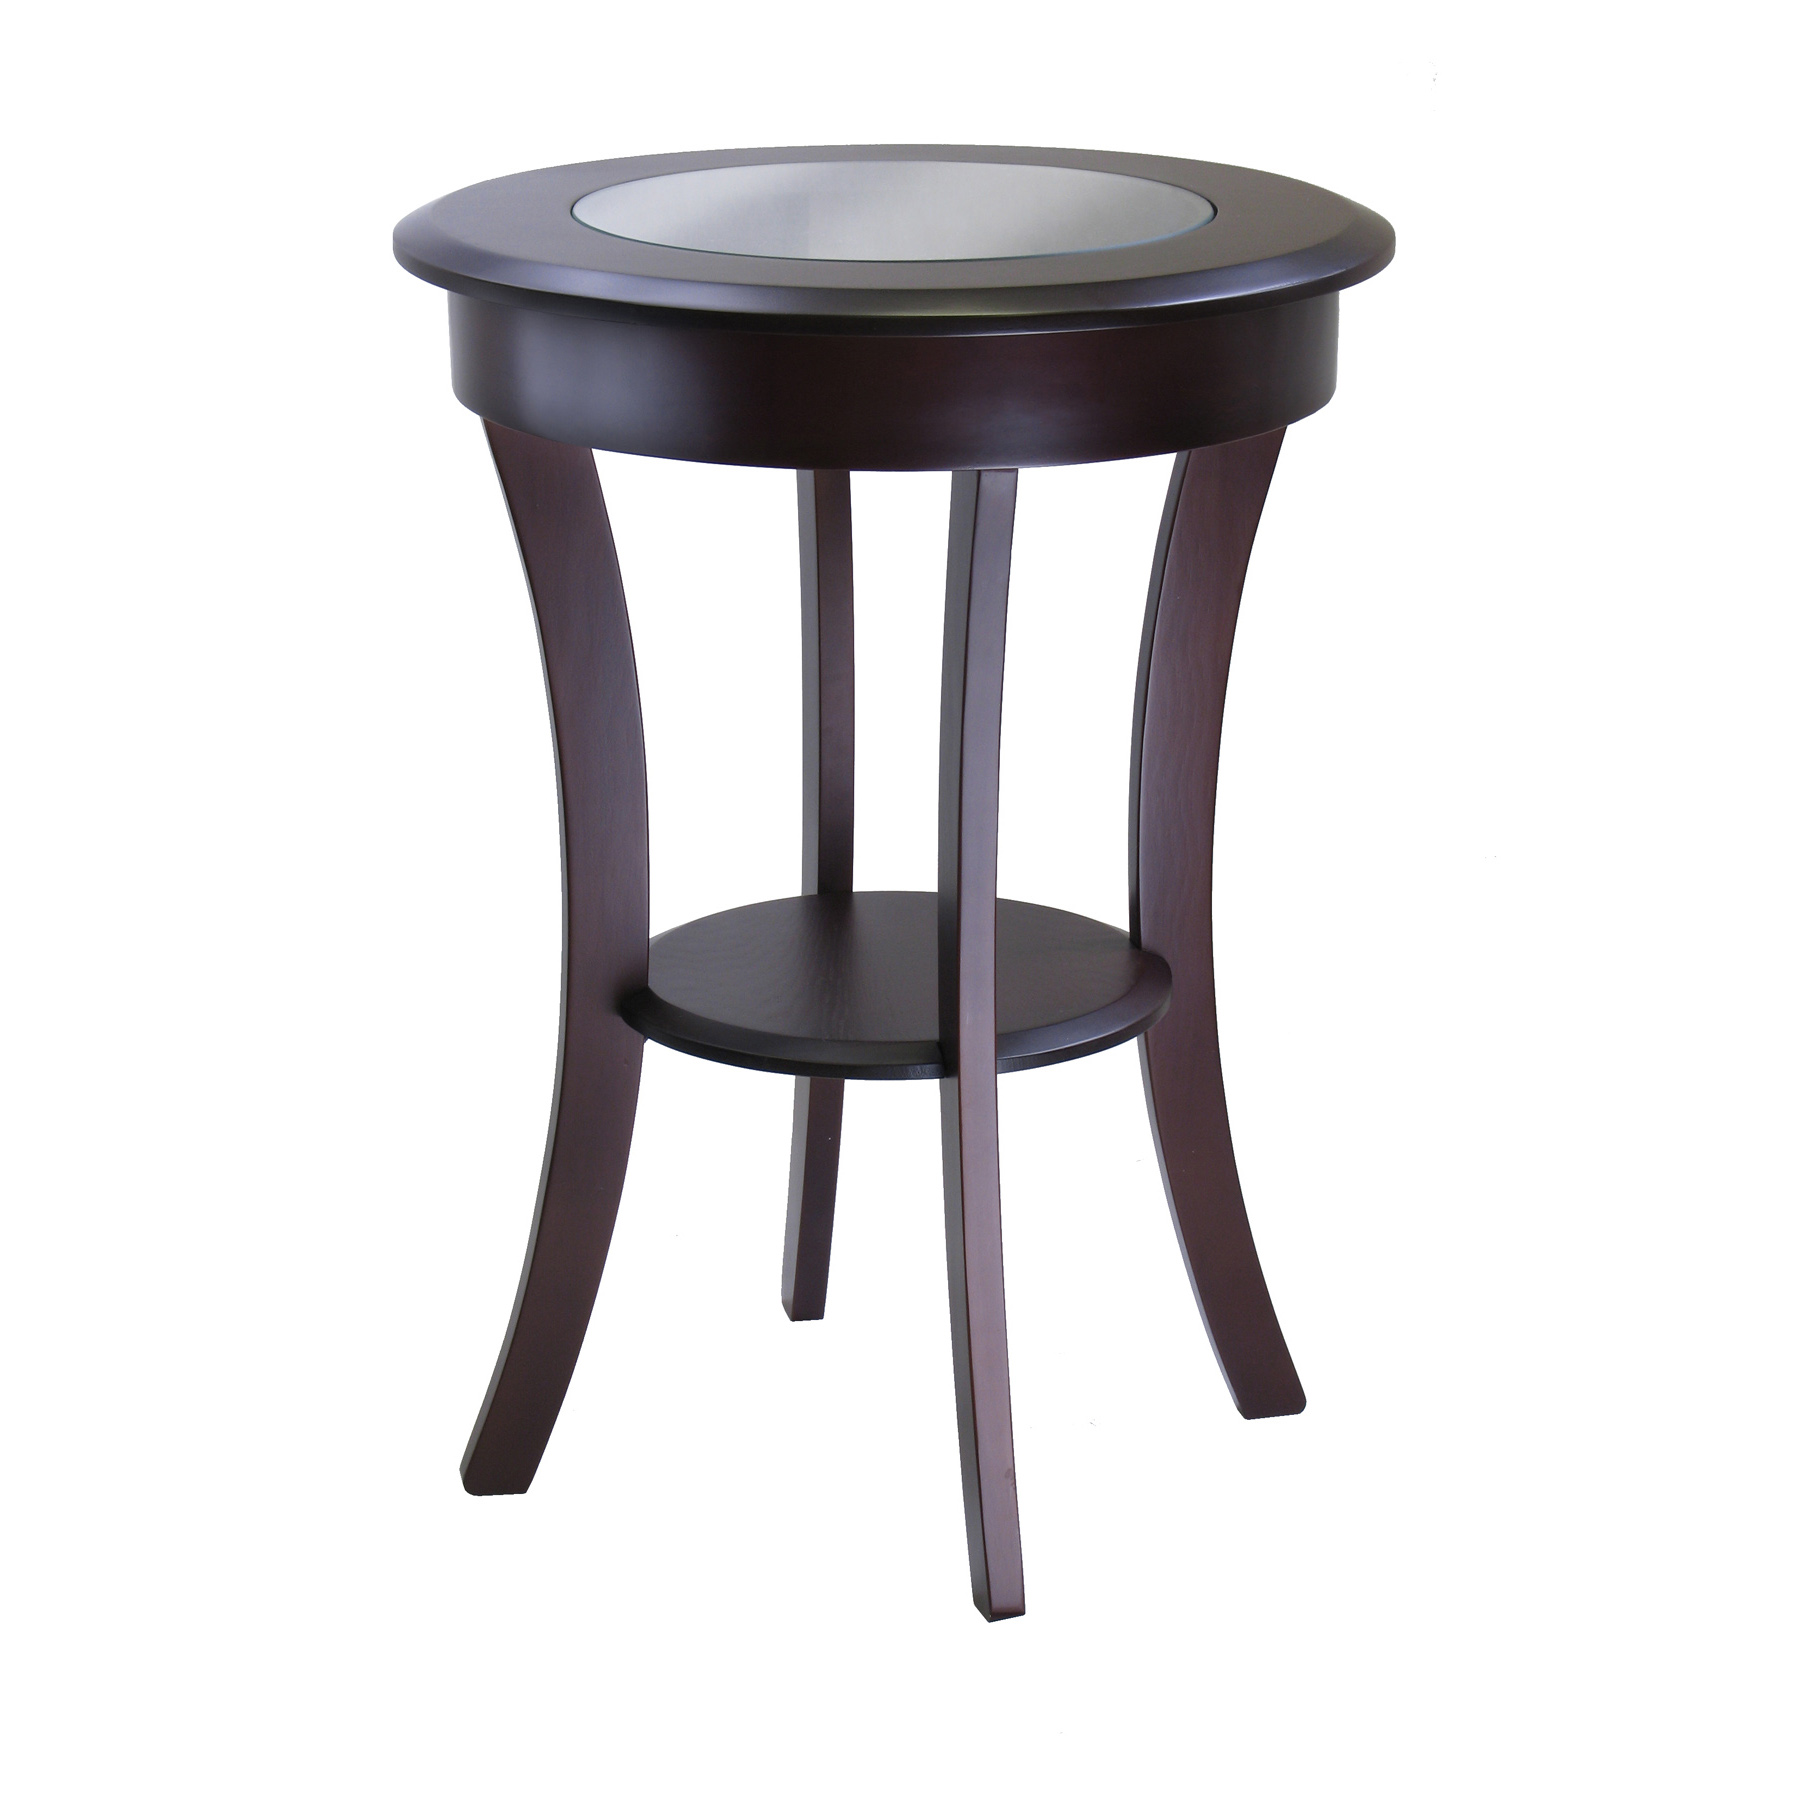 Winsome Wood Cassie Round Accent Table with Glass Top, Cappuccino by Winsome Trading Inc